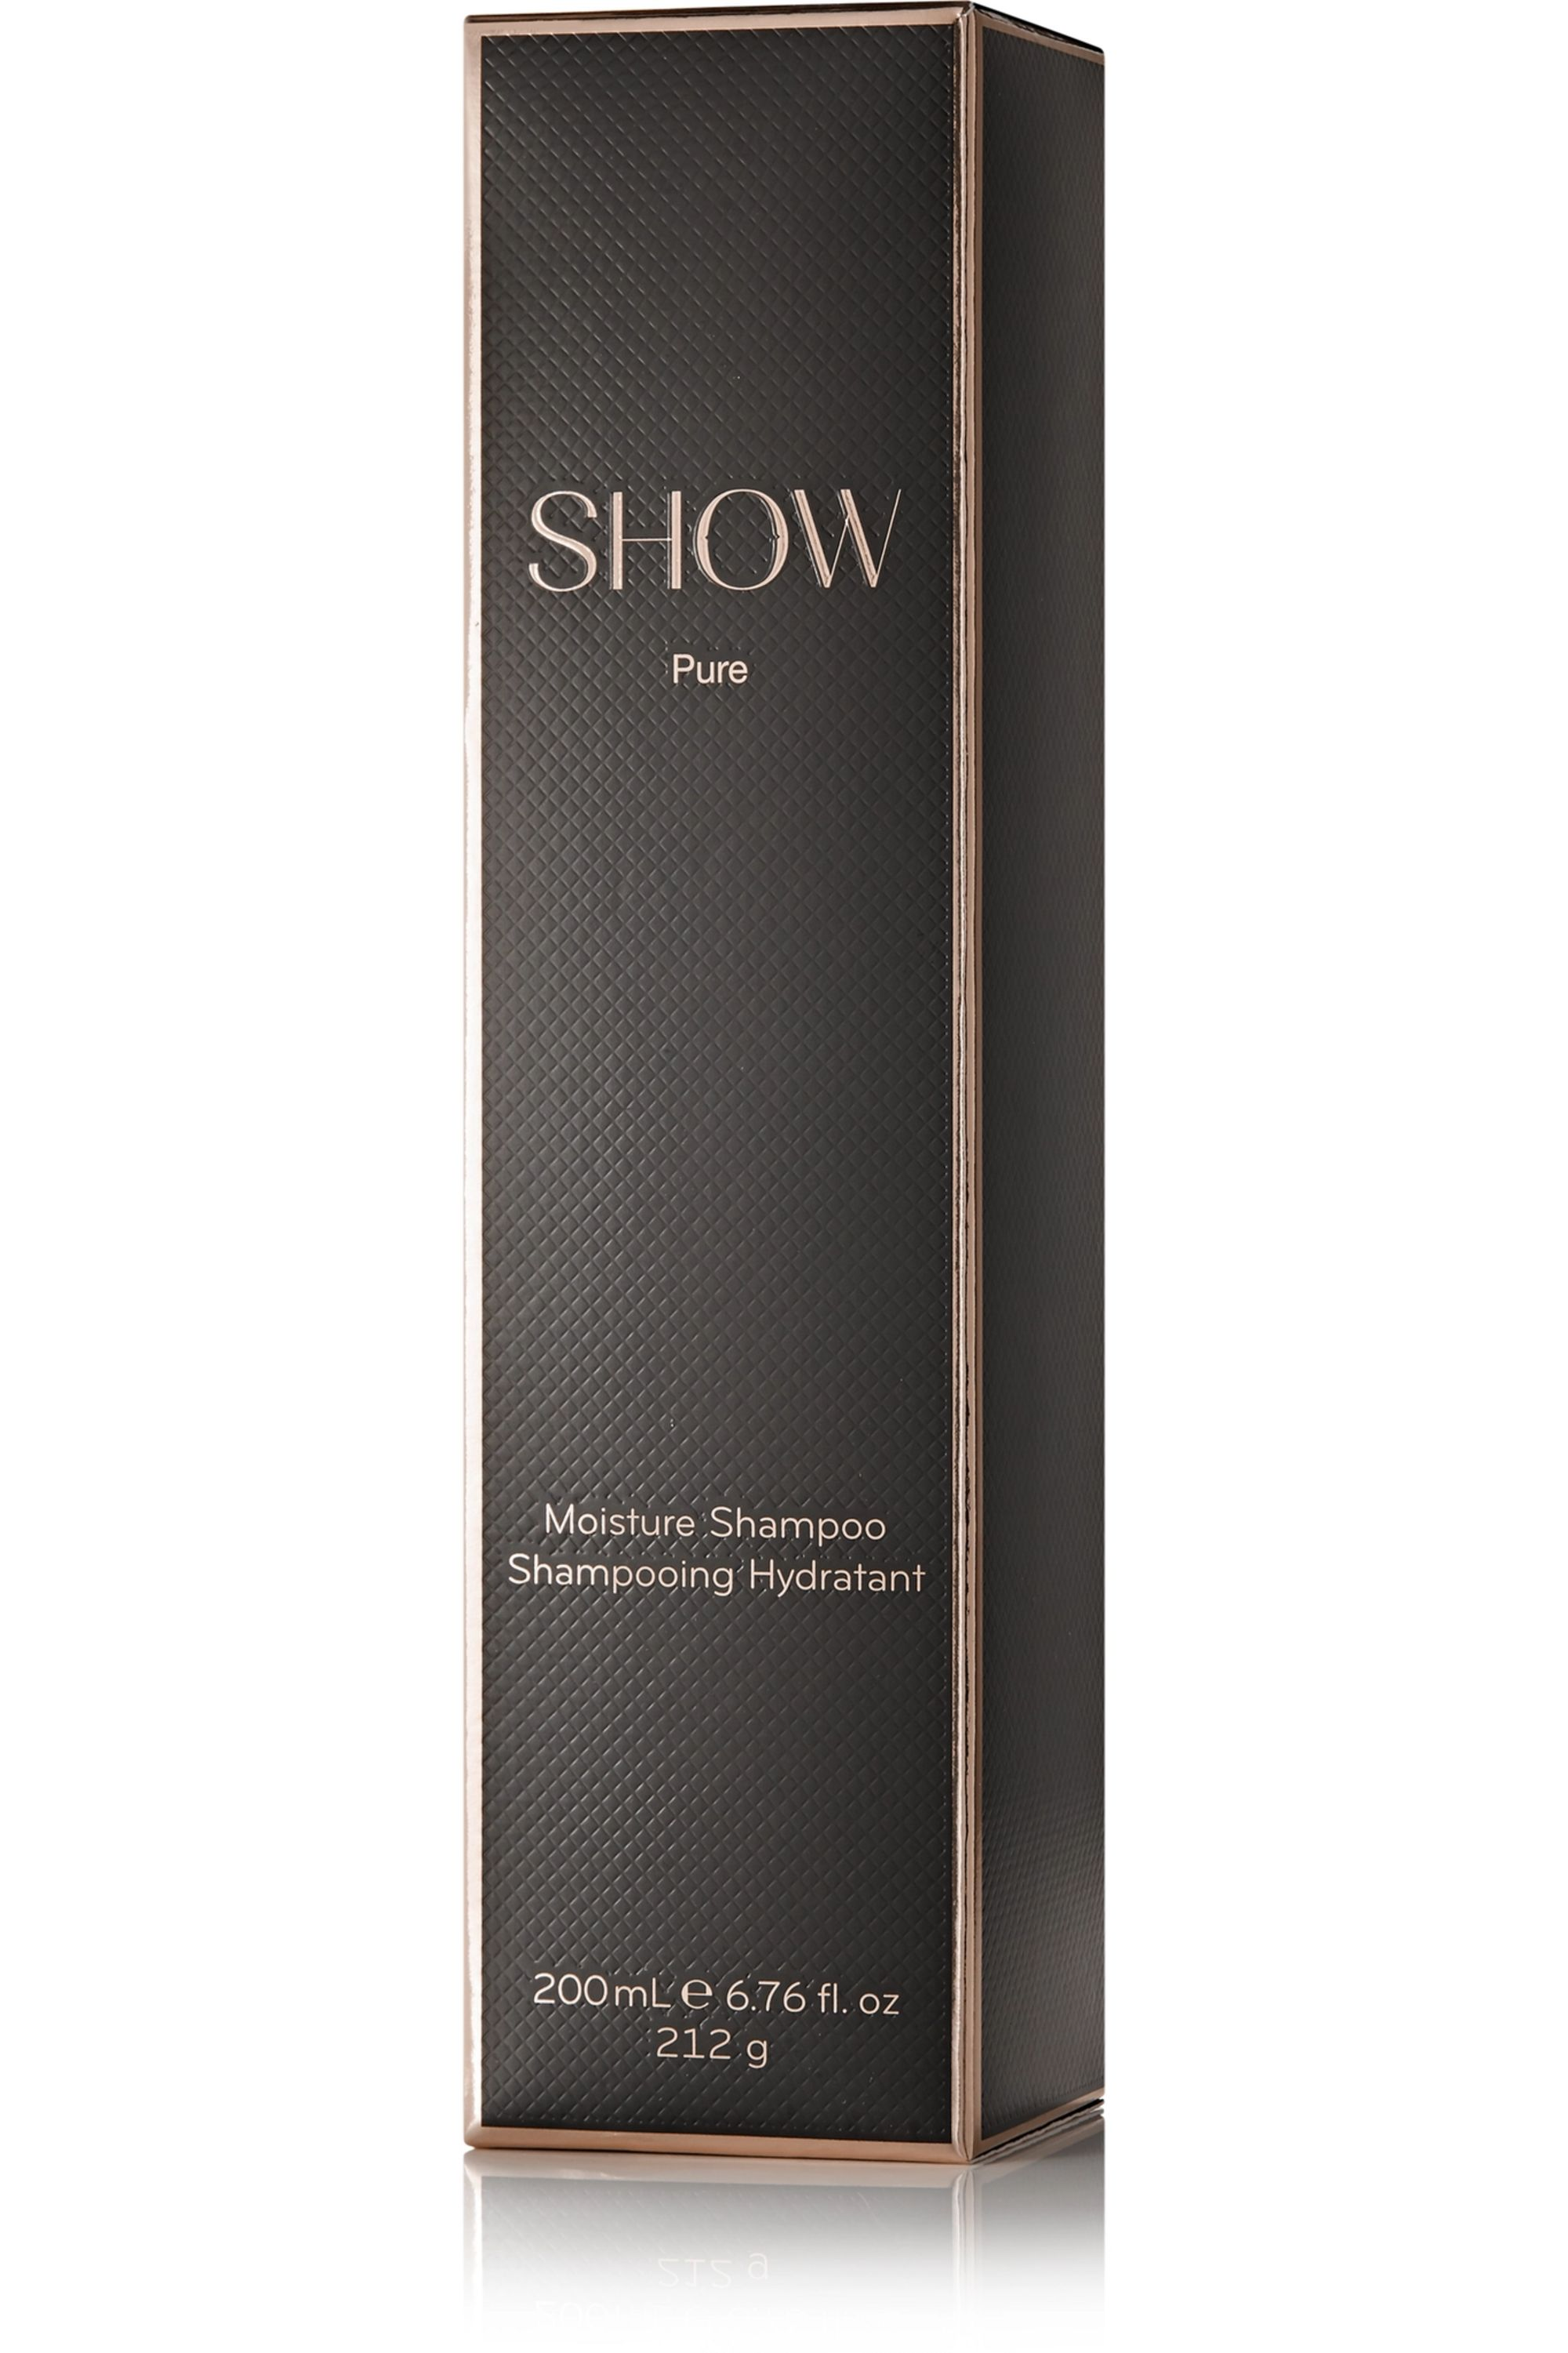 SHOW Beauty Pure Moisture Shampoo, 200ml